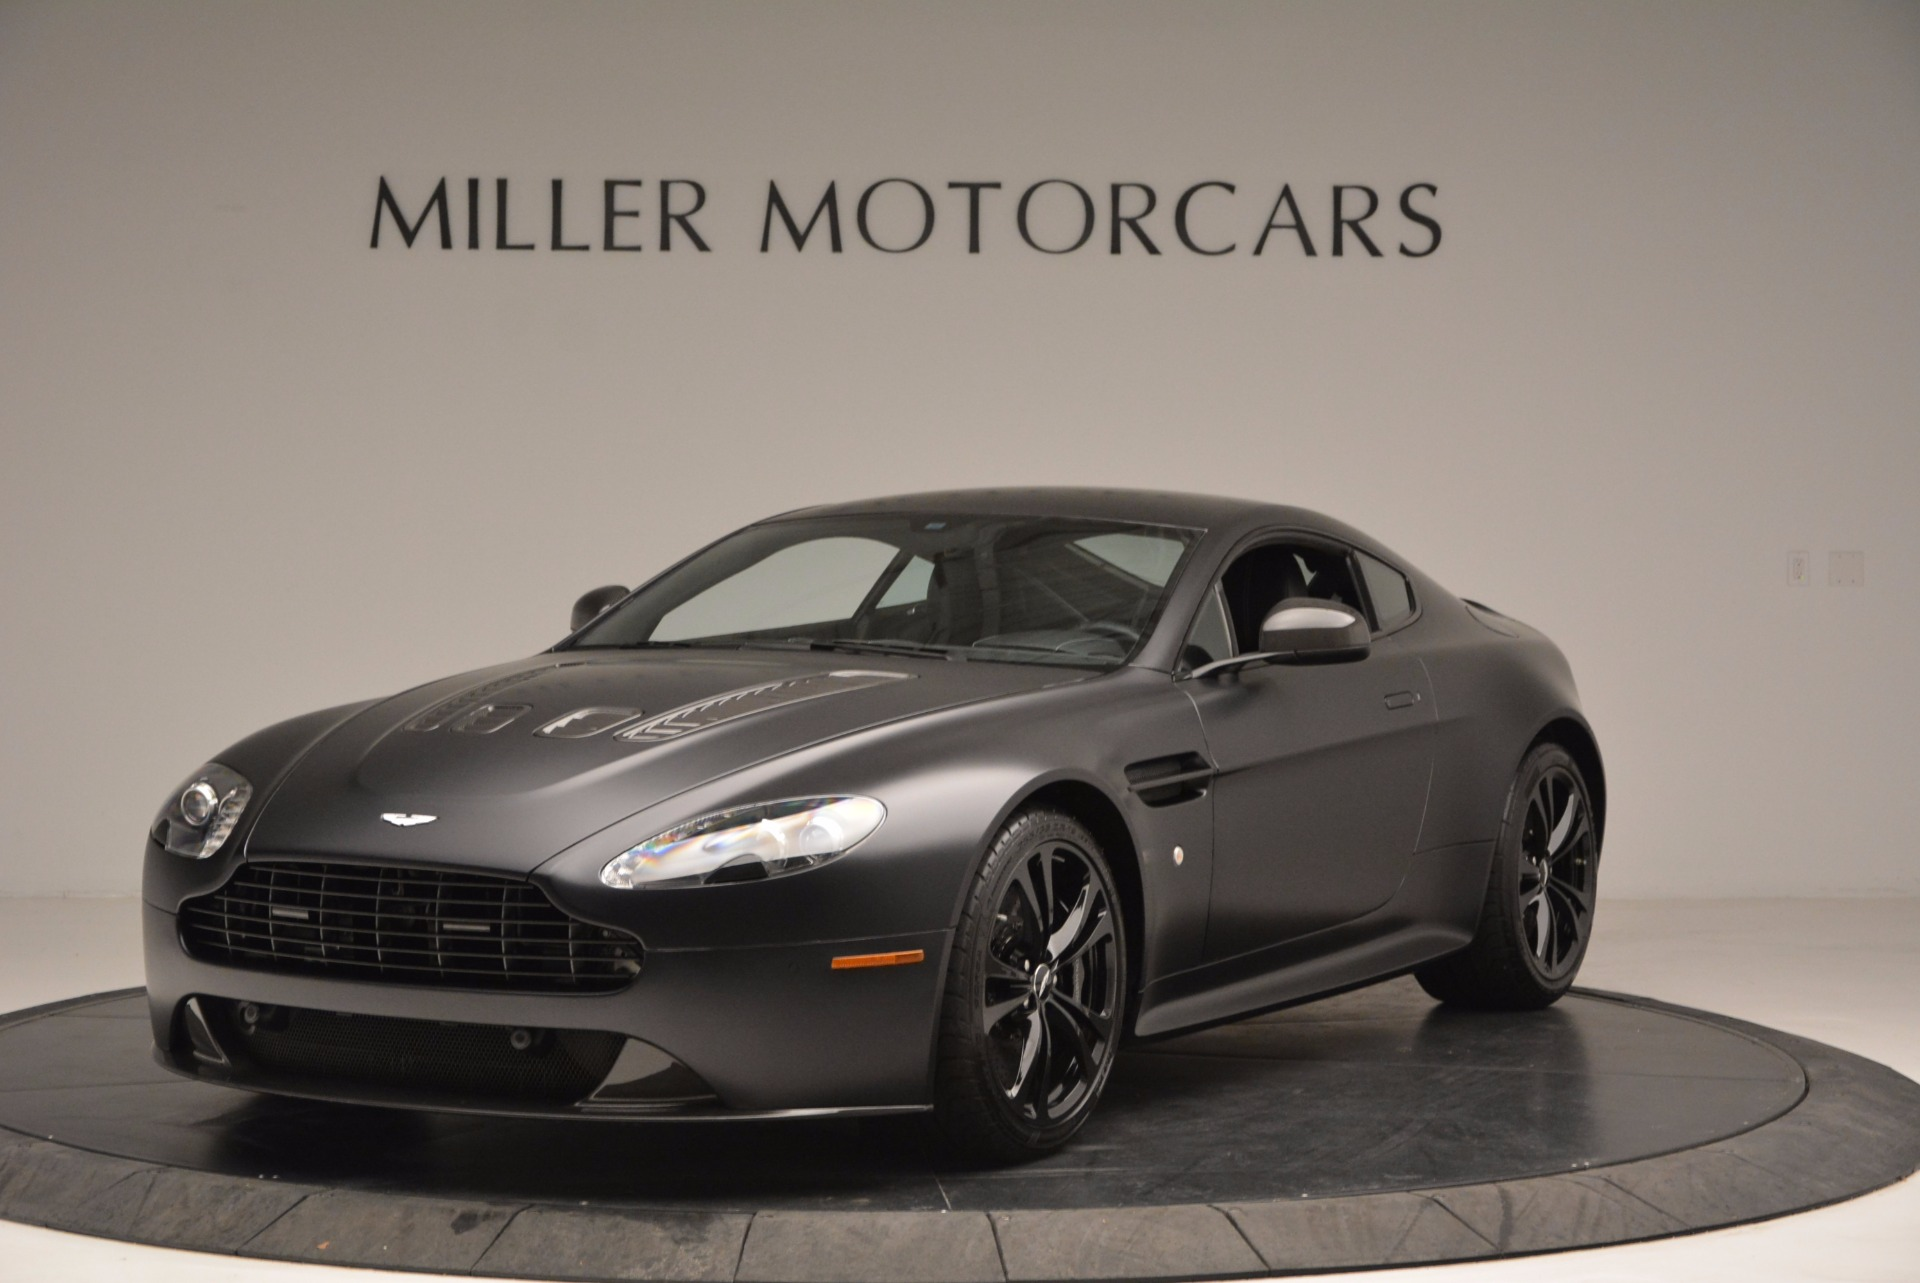 2012 aston martin v12 vantage carbon black stock # a1214a for sale